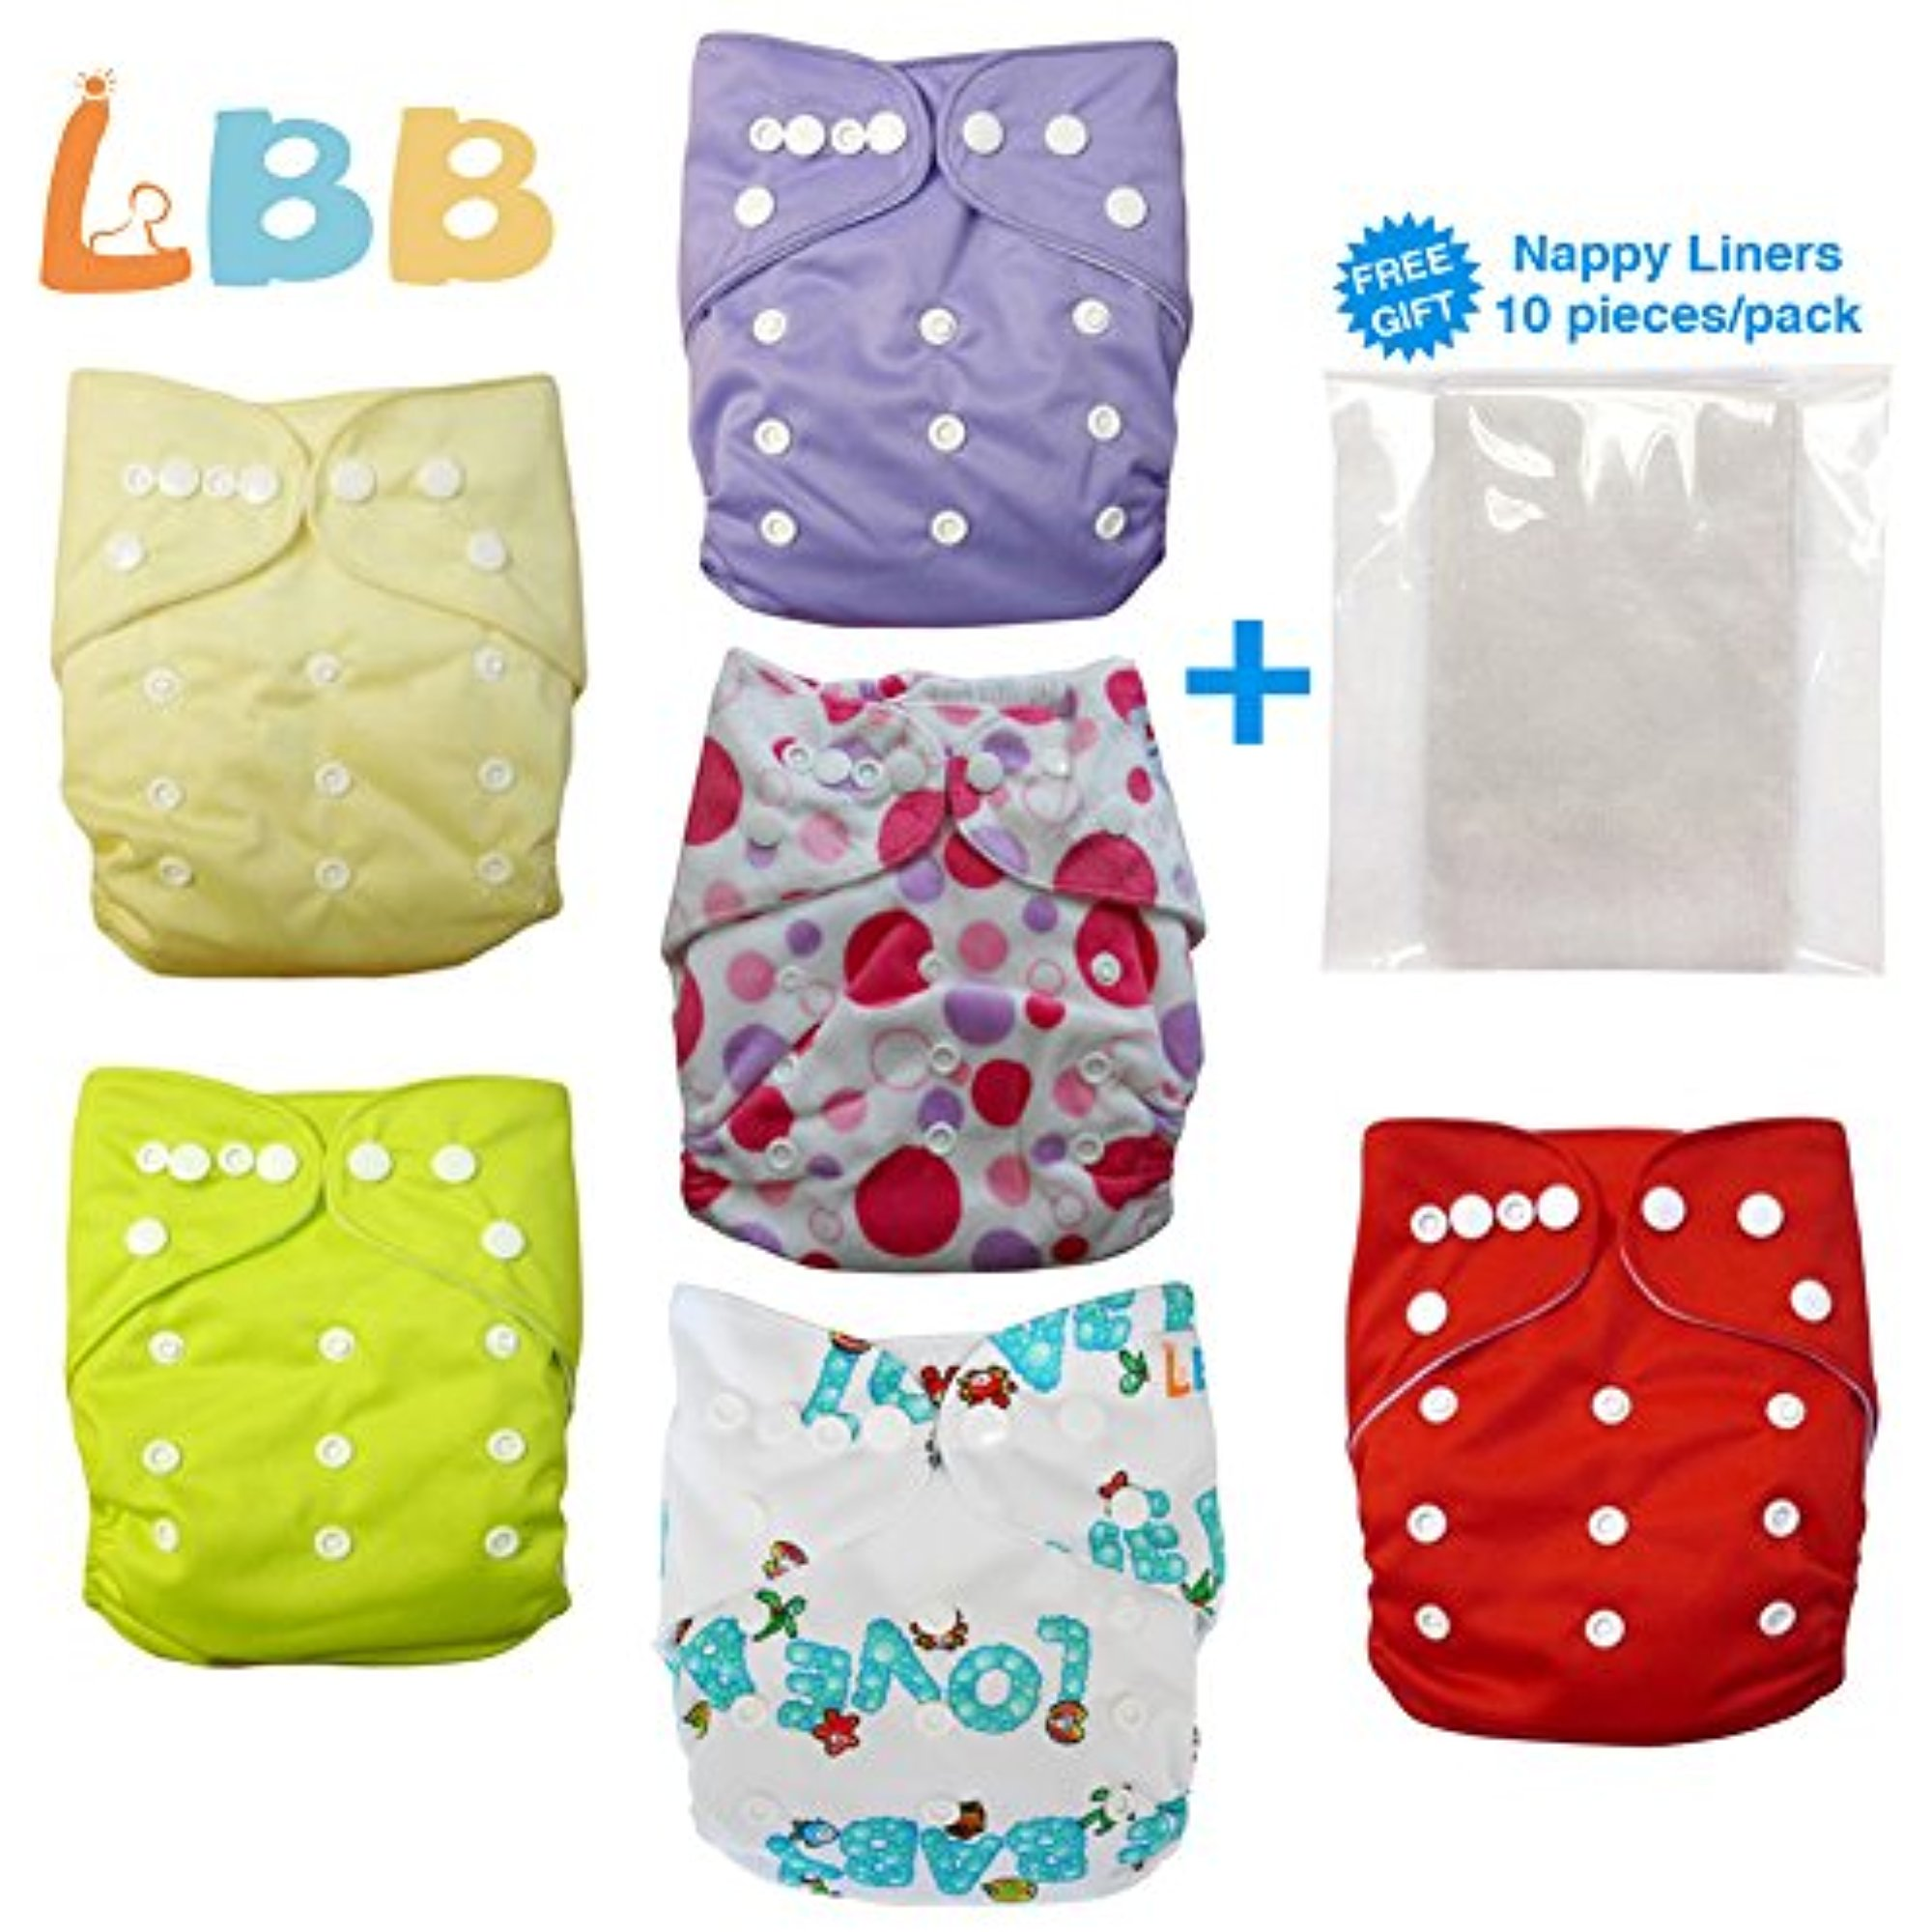 LBB Baby Cloth Diapers Pocket Diapers With Double Rows of Adjustable Snaps, 6pcs Pack